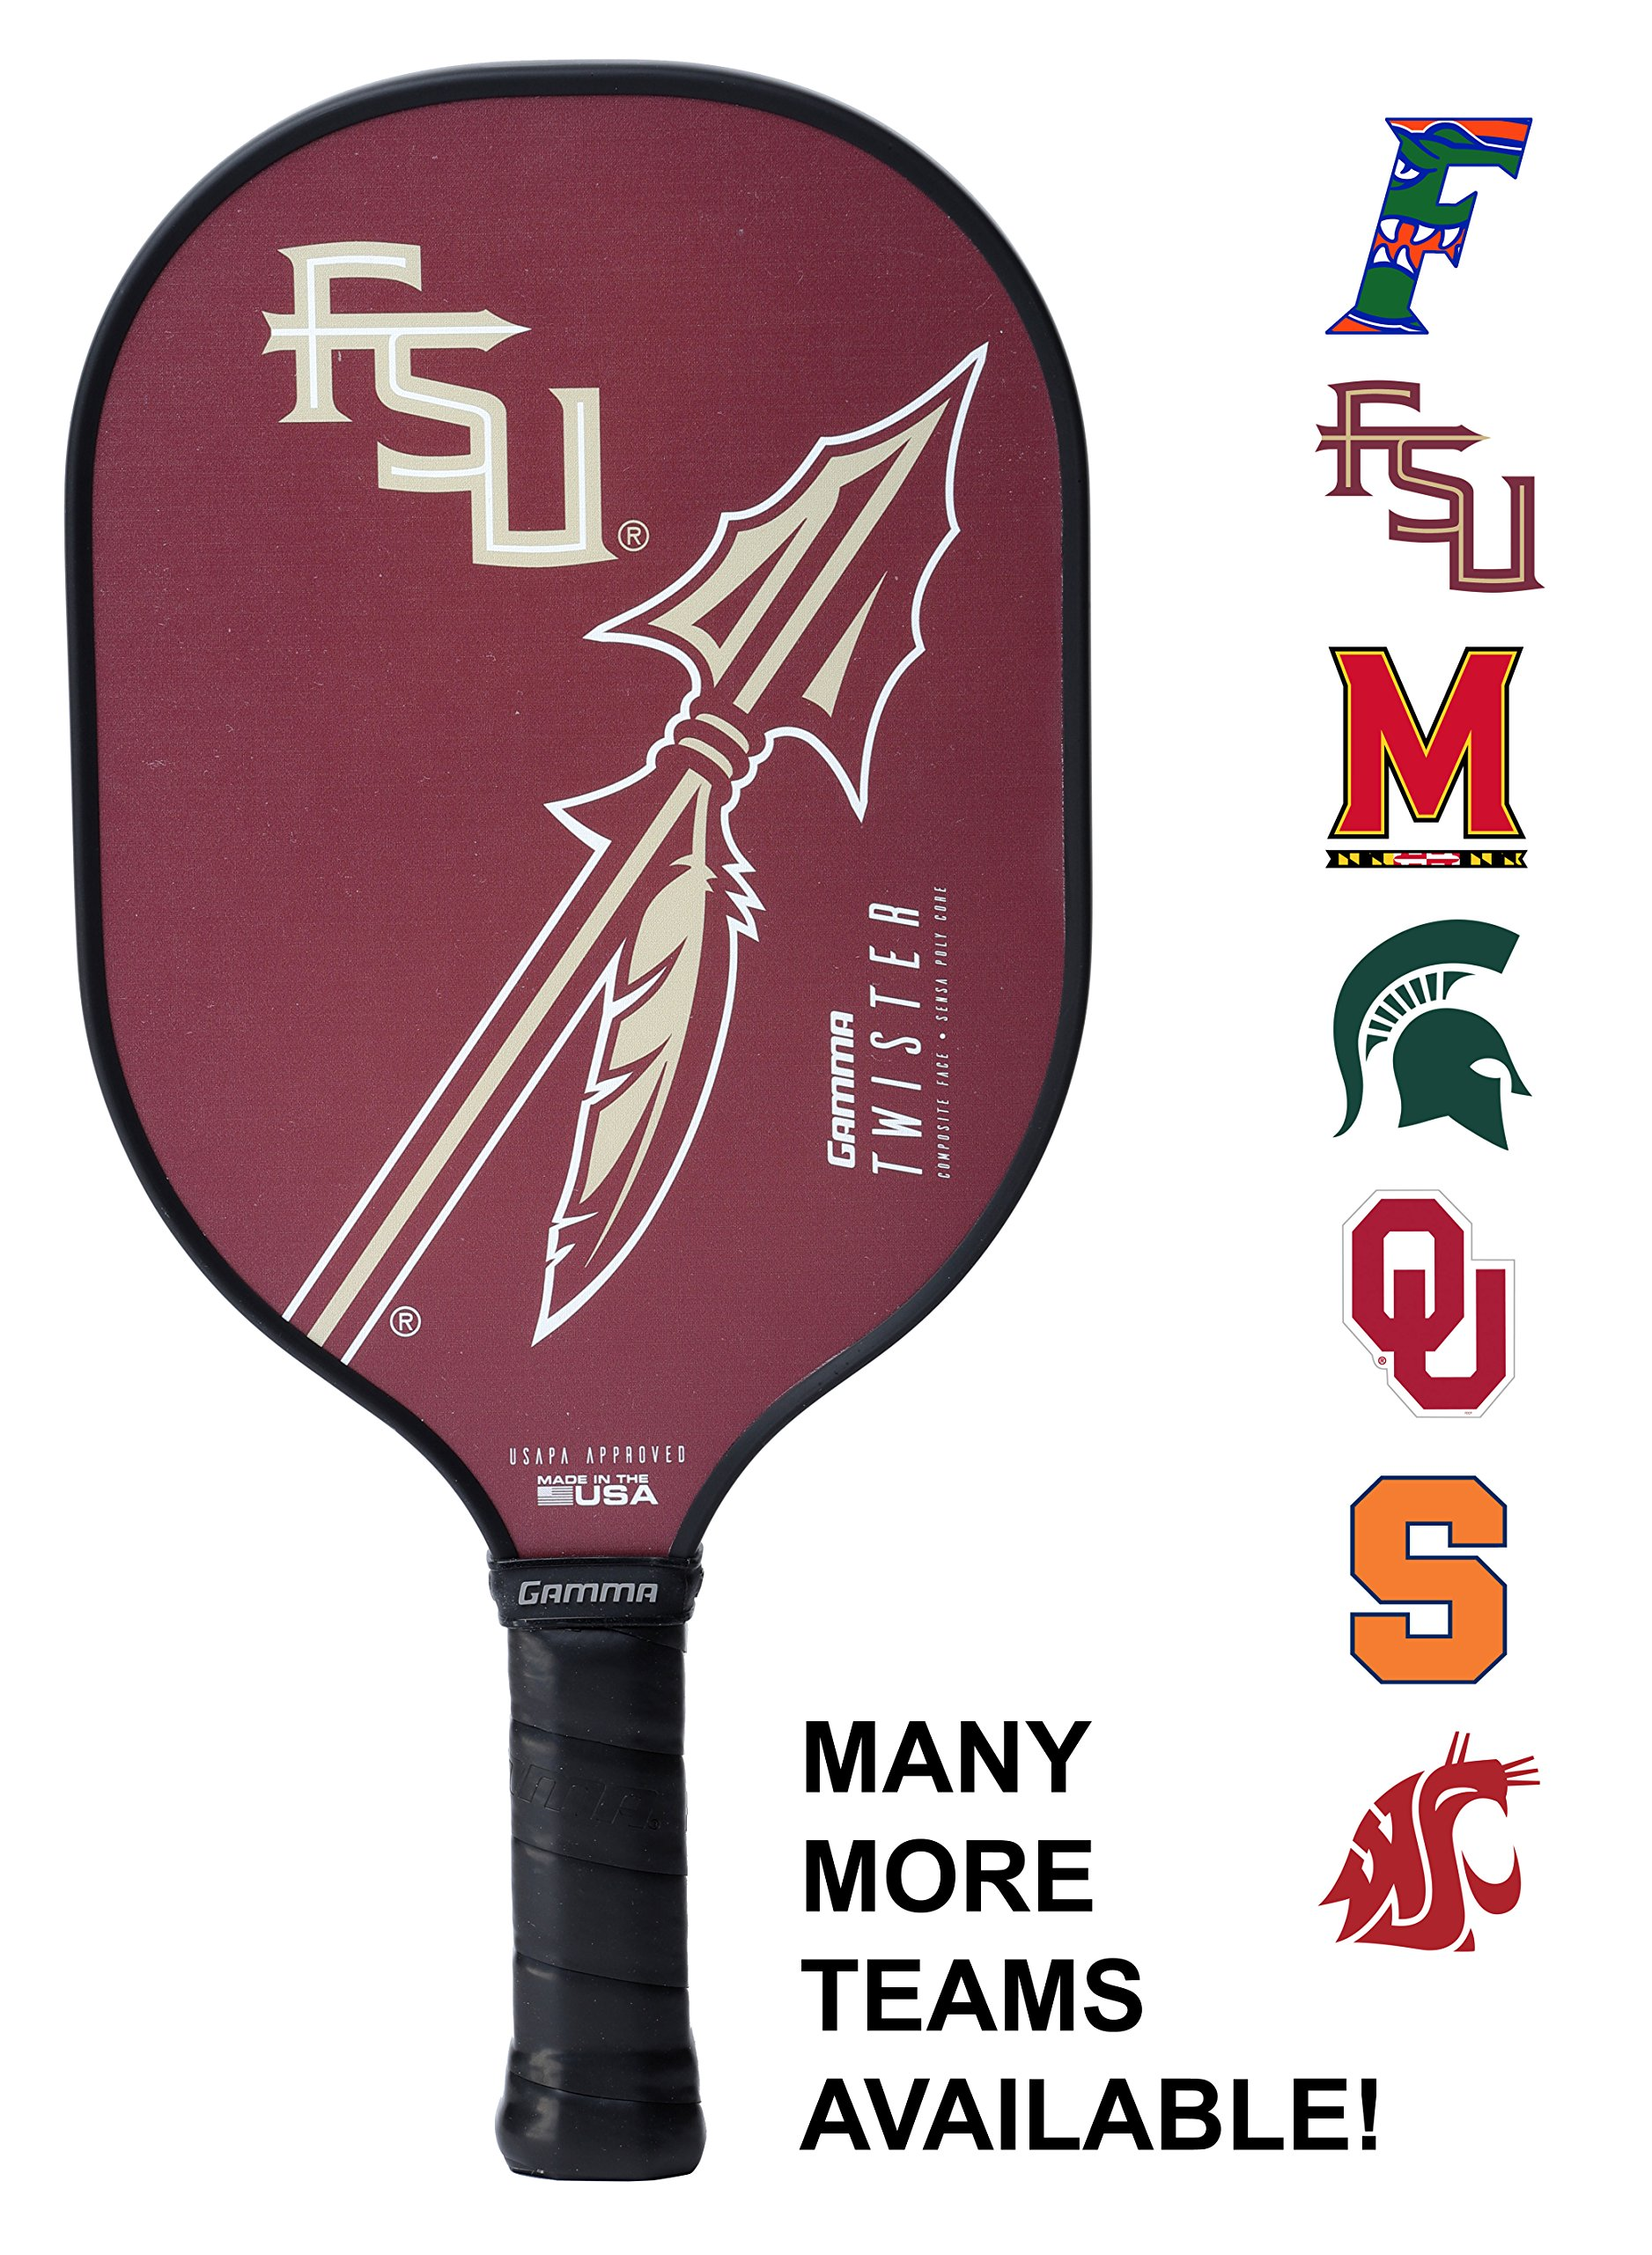 Gamma Collegiate Twister Composite Pickleball Paddle: Pickle Ball Paddles for Indoor & Outdoor Play - USAPA Approved Racquet for Adults & Kids - Florida State Seminoles